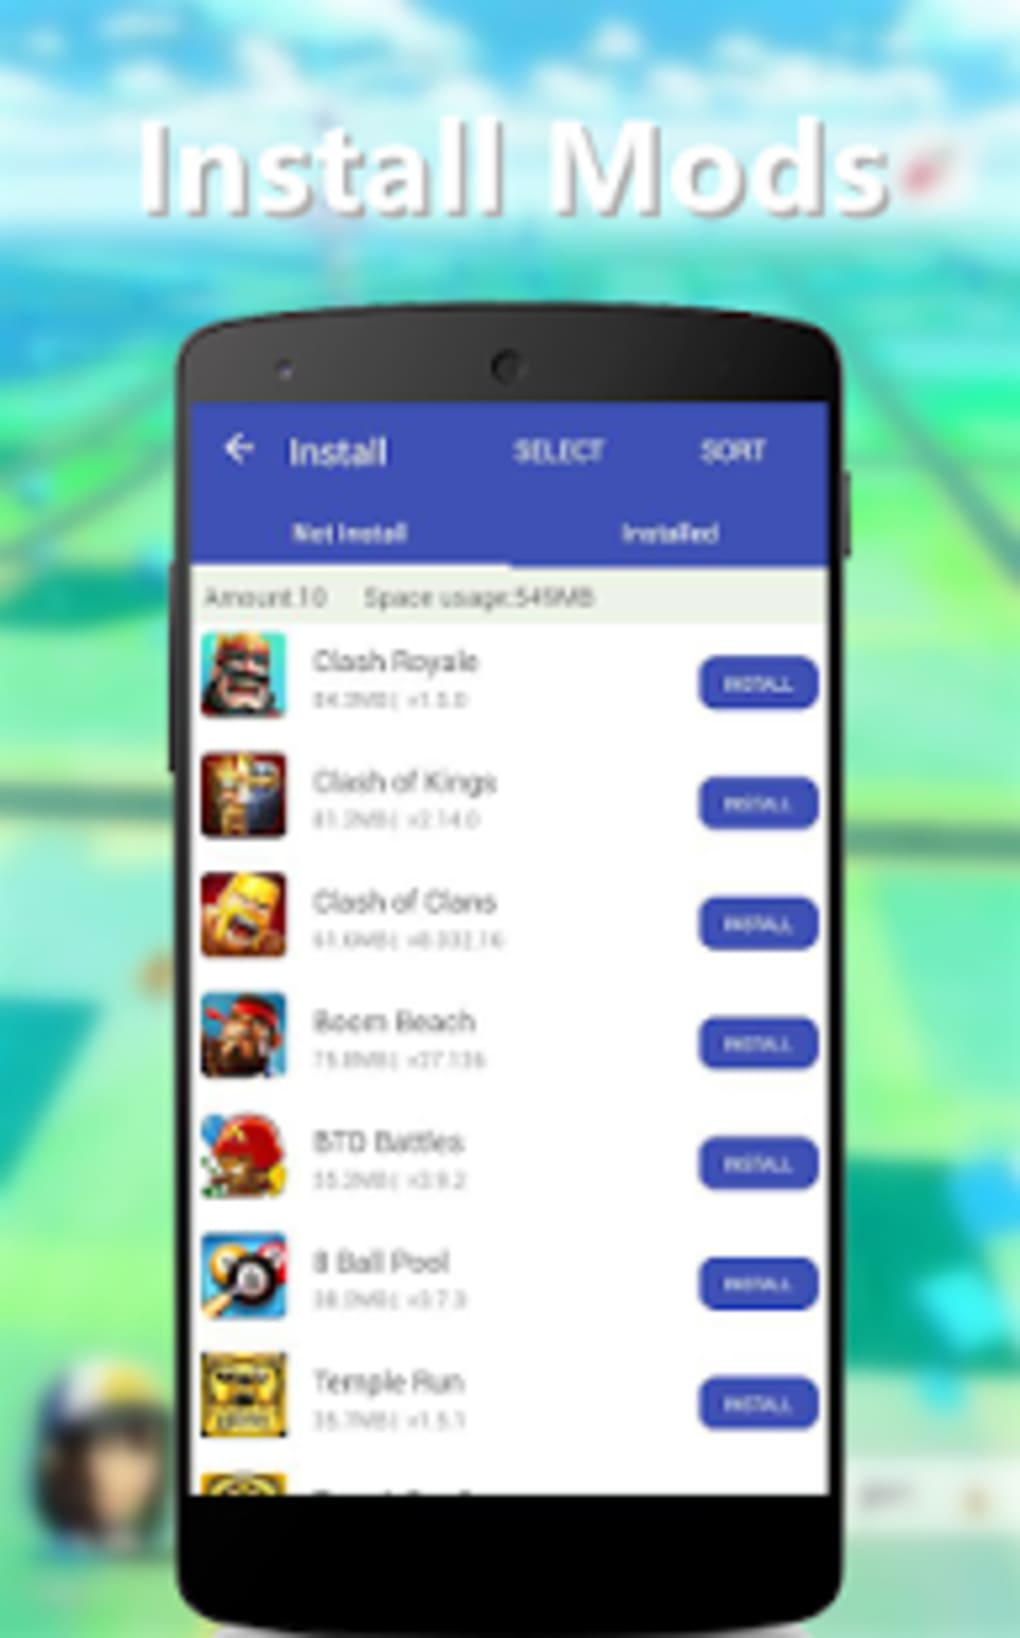 Mods Installer for Android - Download